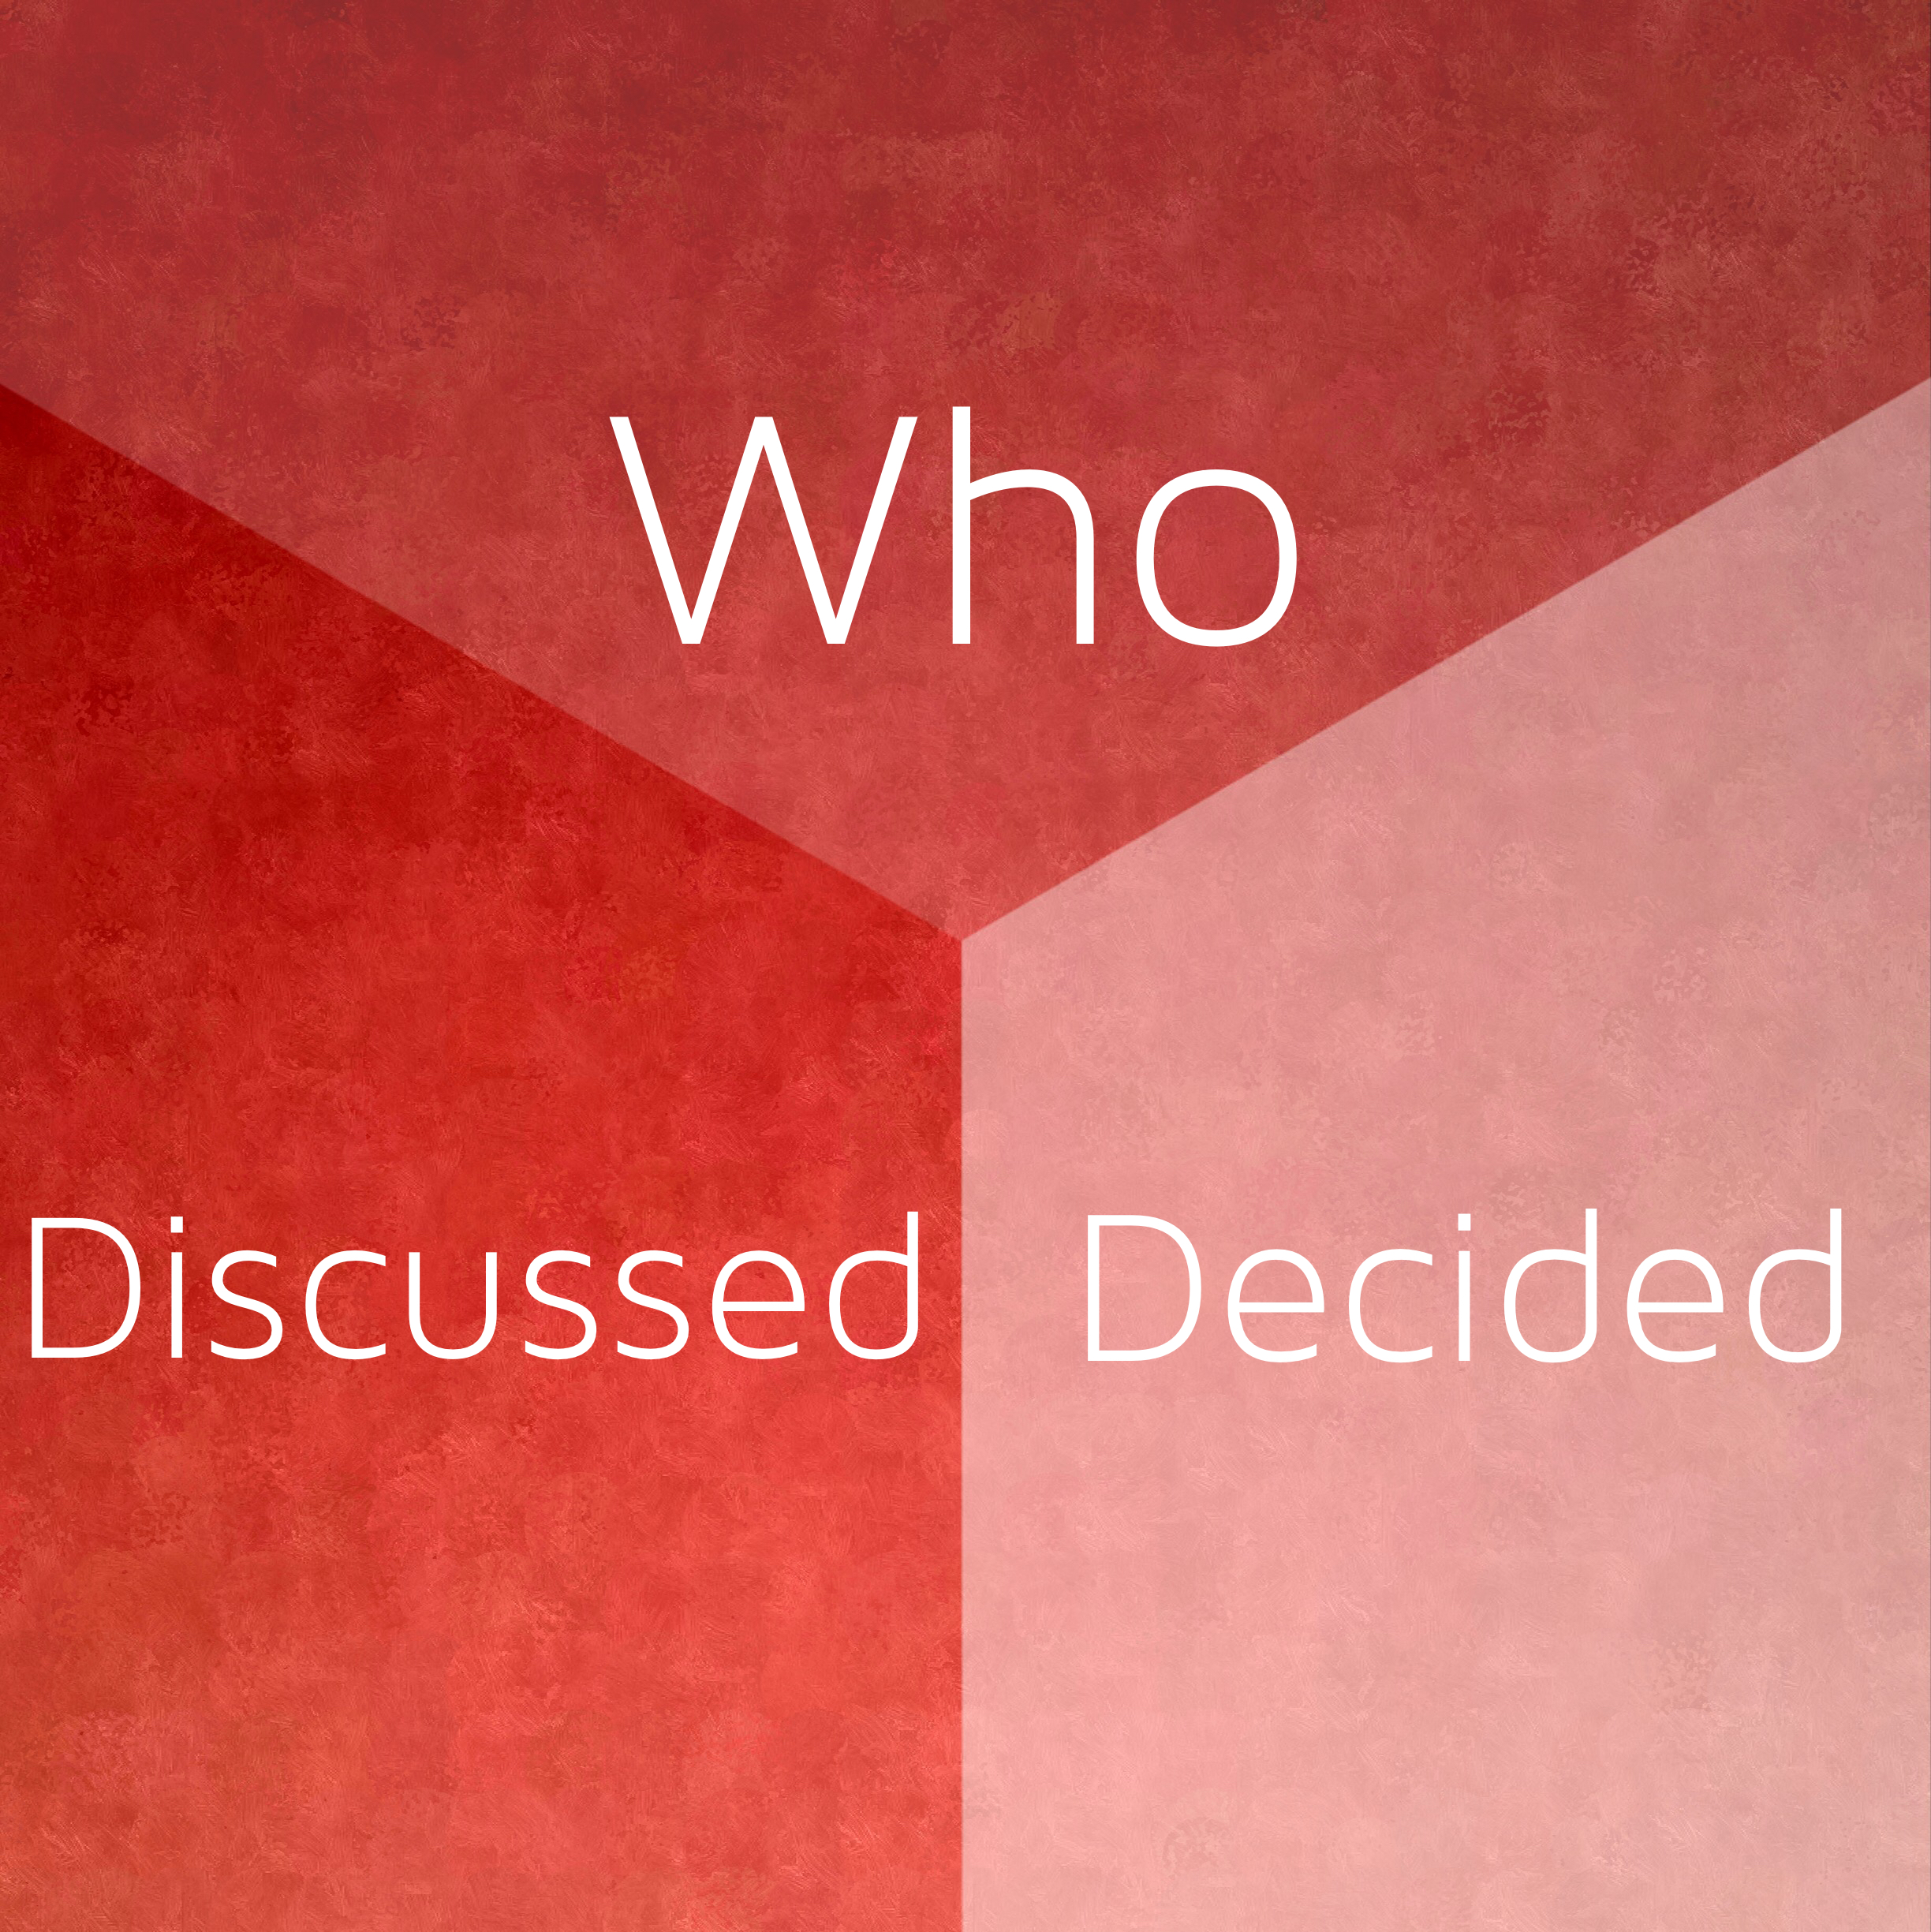 who-discussed-decided.jpg